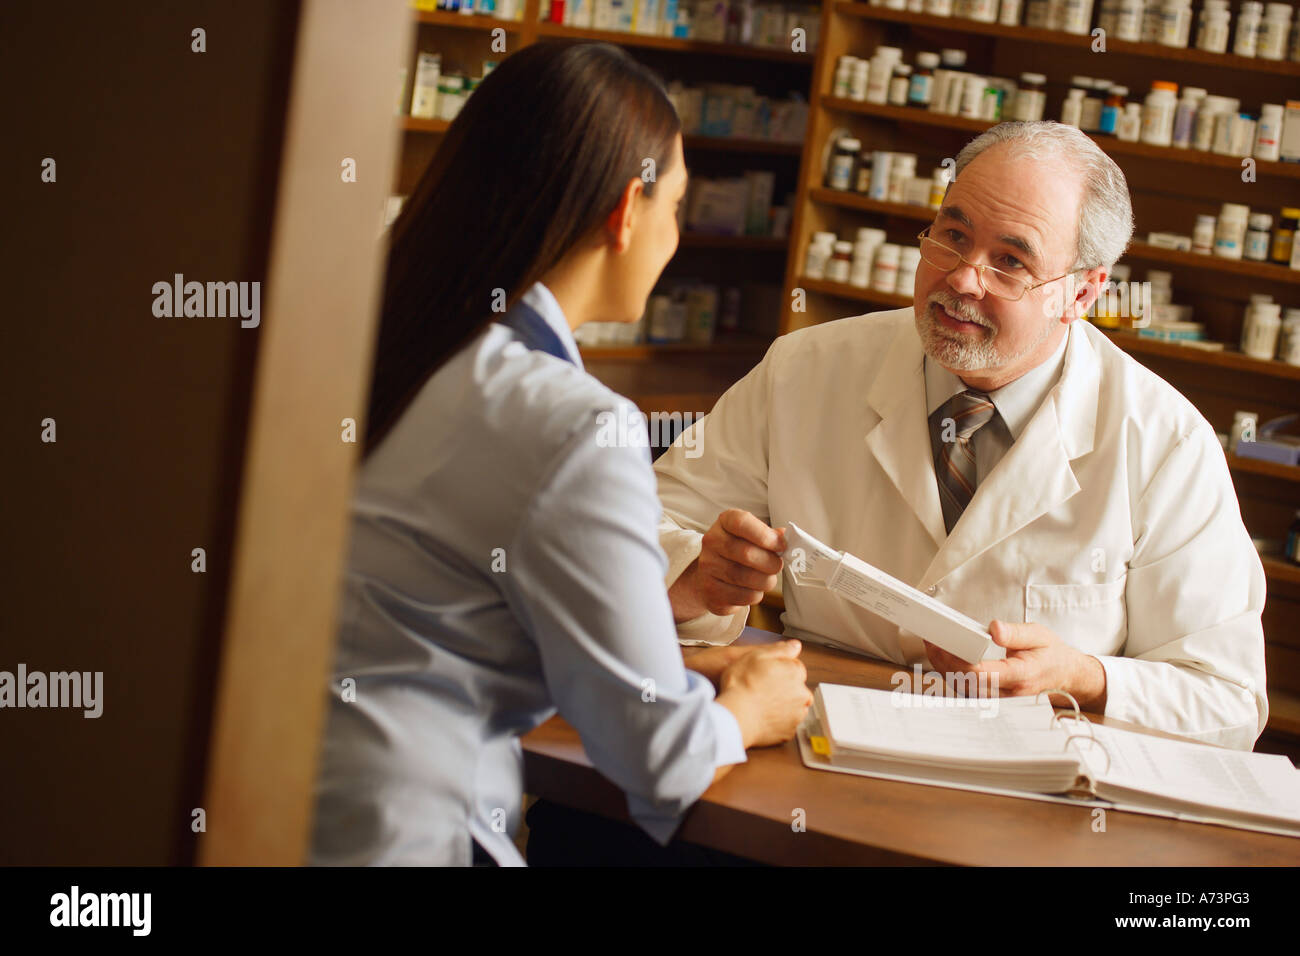 A young woman seeking advise from an older man at a pharmacy - Stock Image